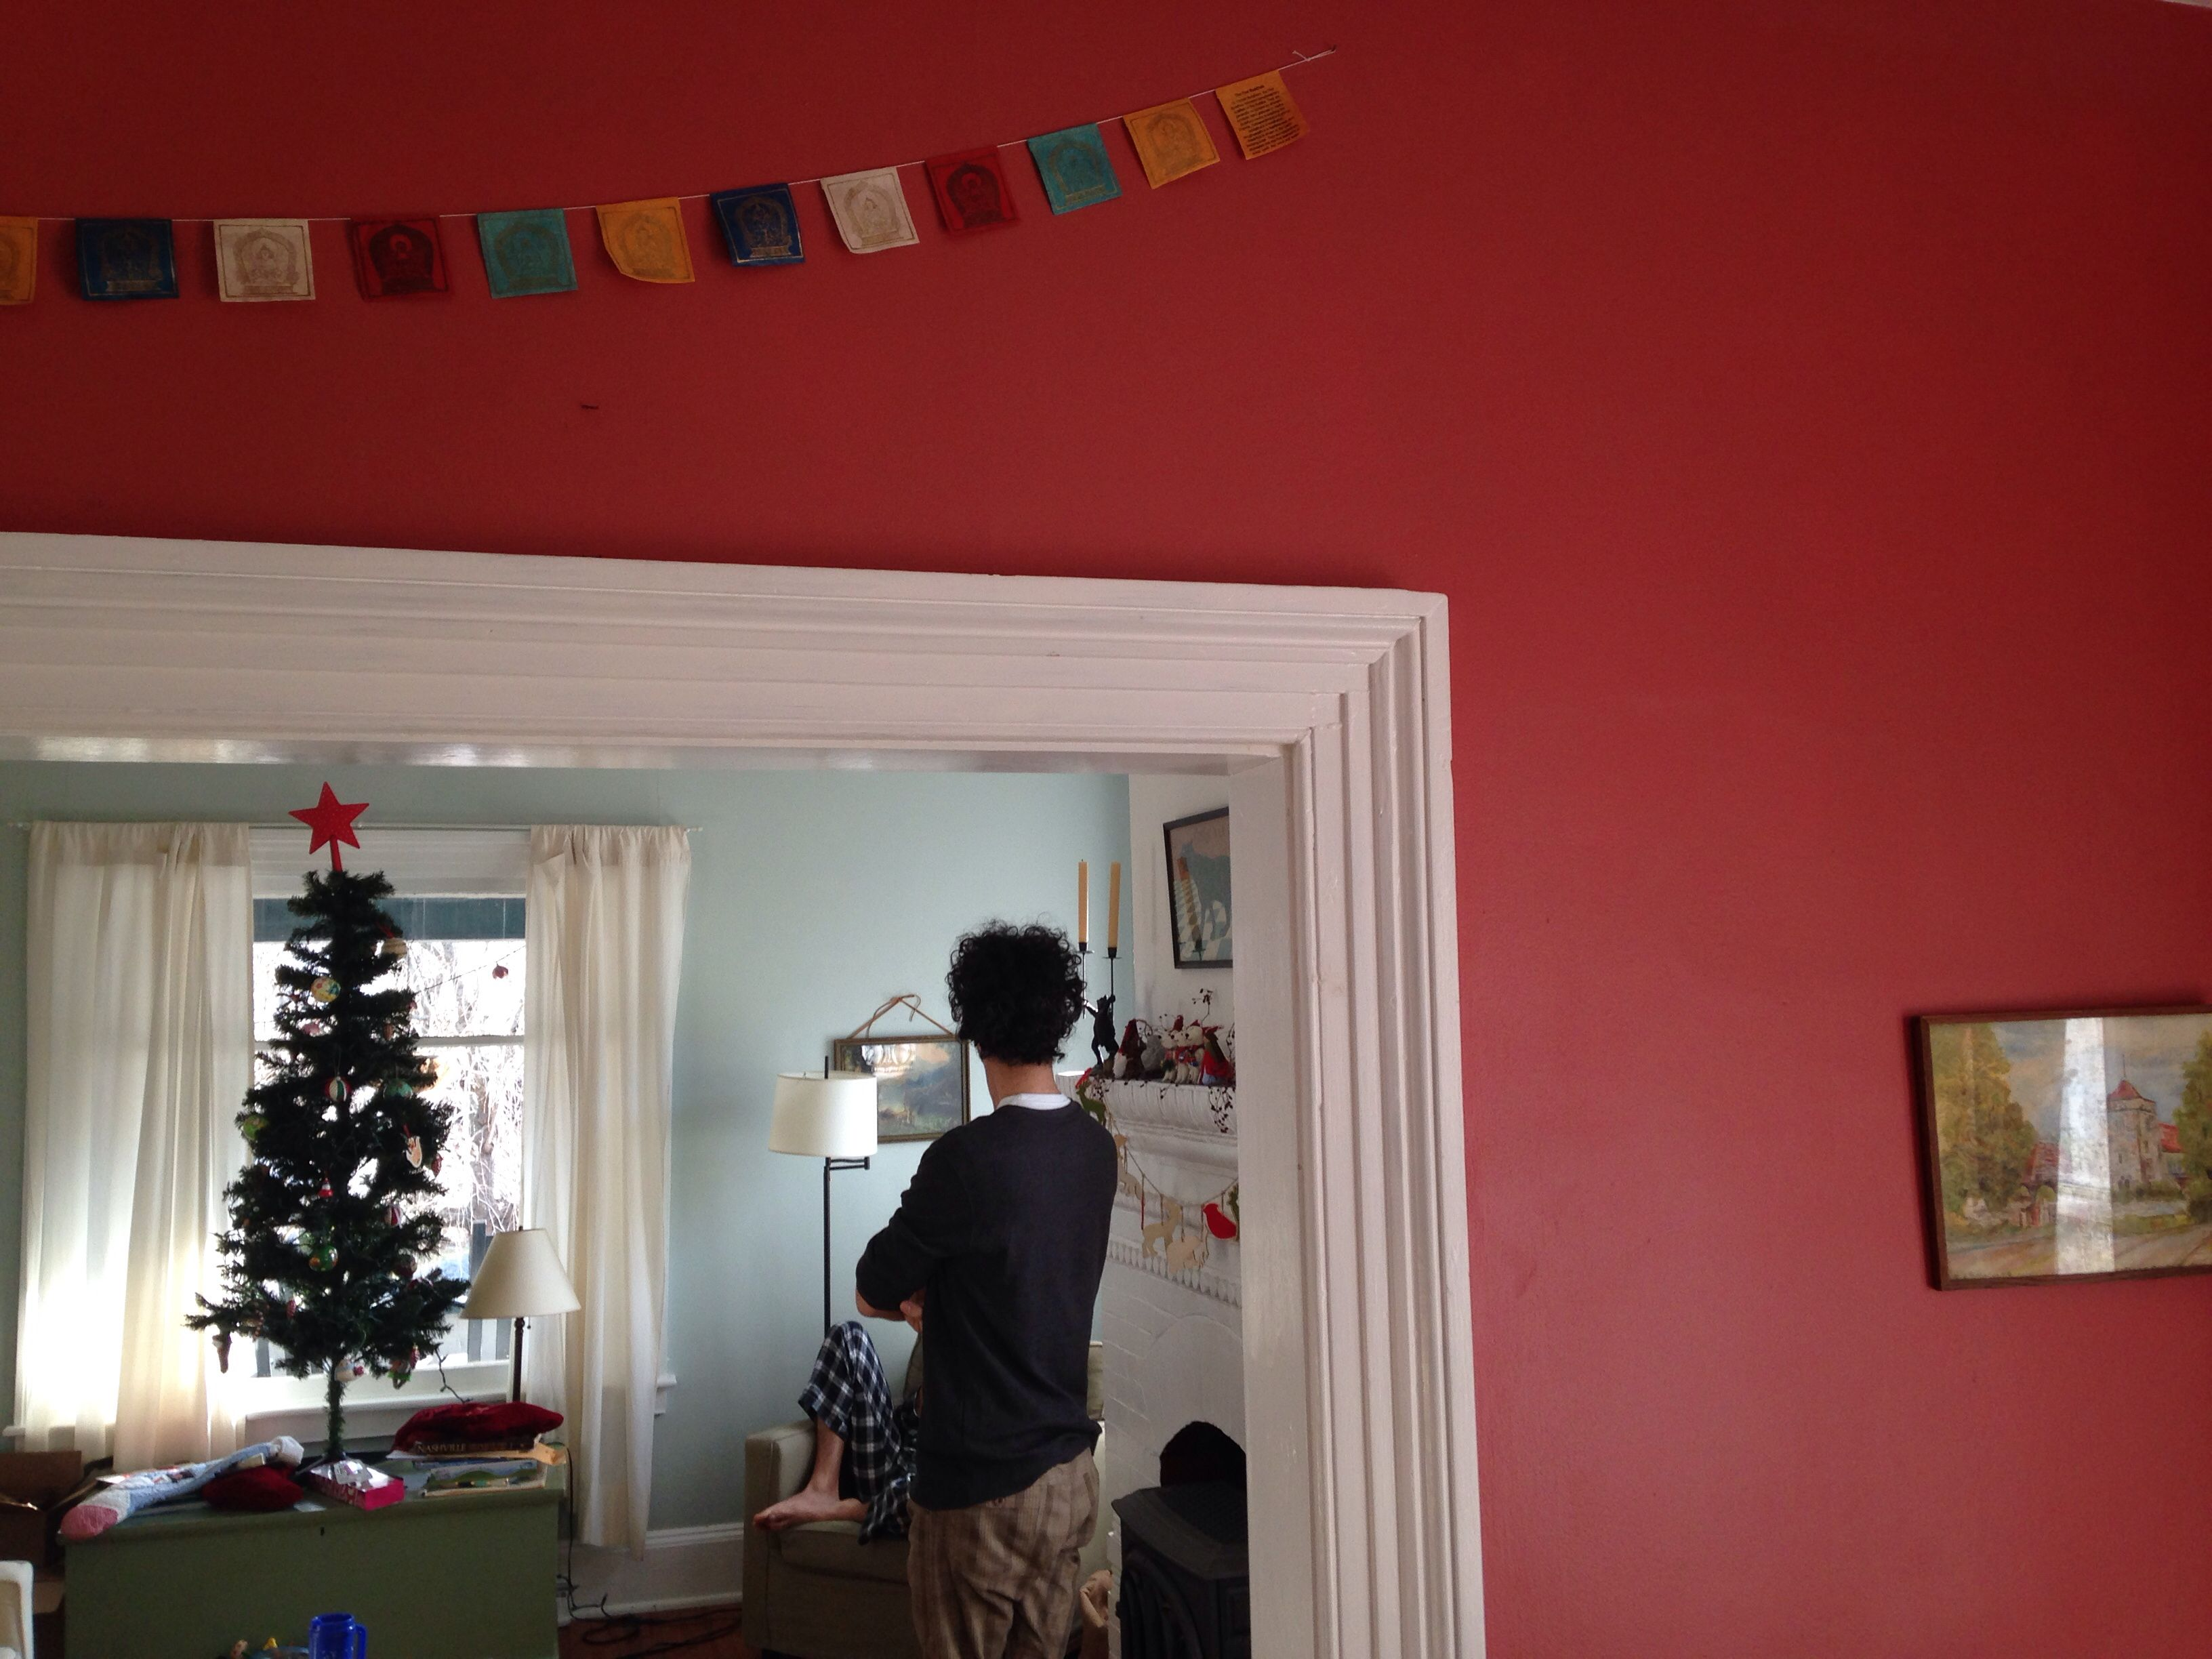 Red dining room walls seem to fit the season